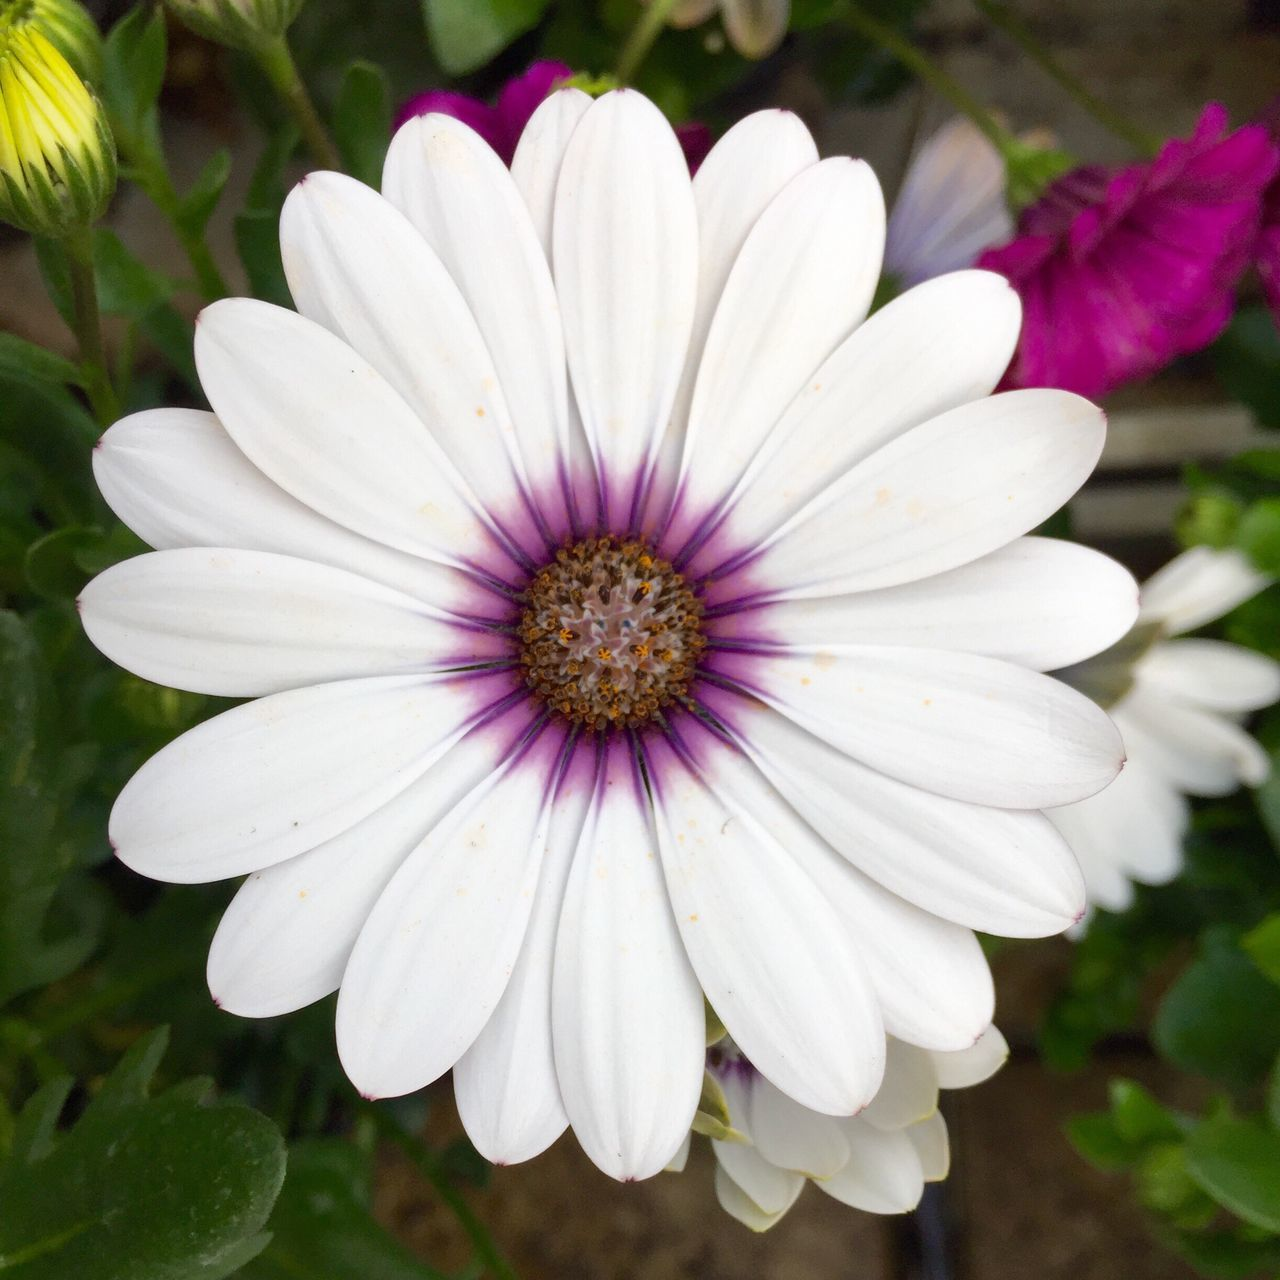 flower, petal, nature, flower head, plant, beauty in nature, growth, fragility, freshness, white color, blooming, osteospermum, outdoors, day, no people, pollen, close-up